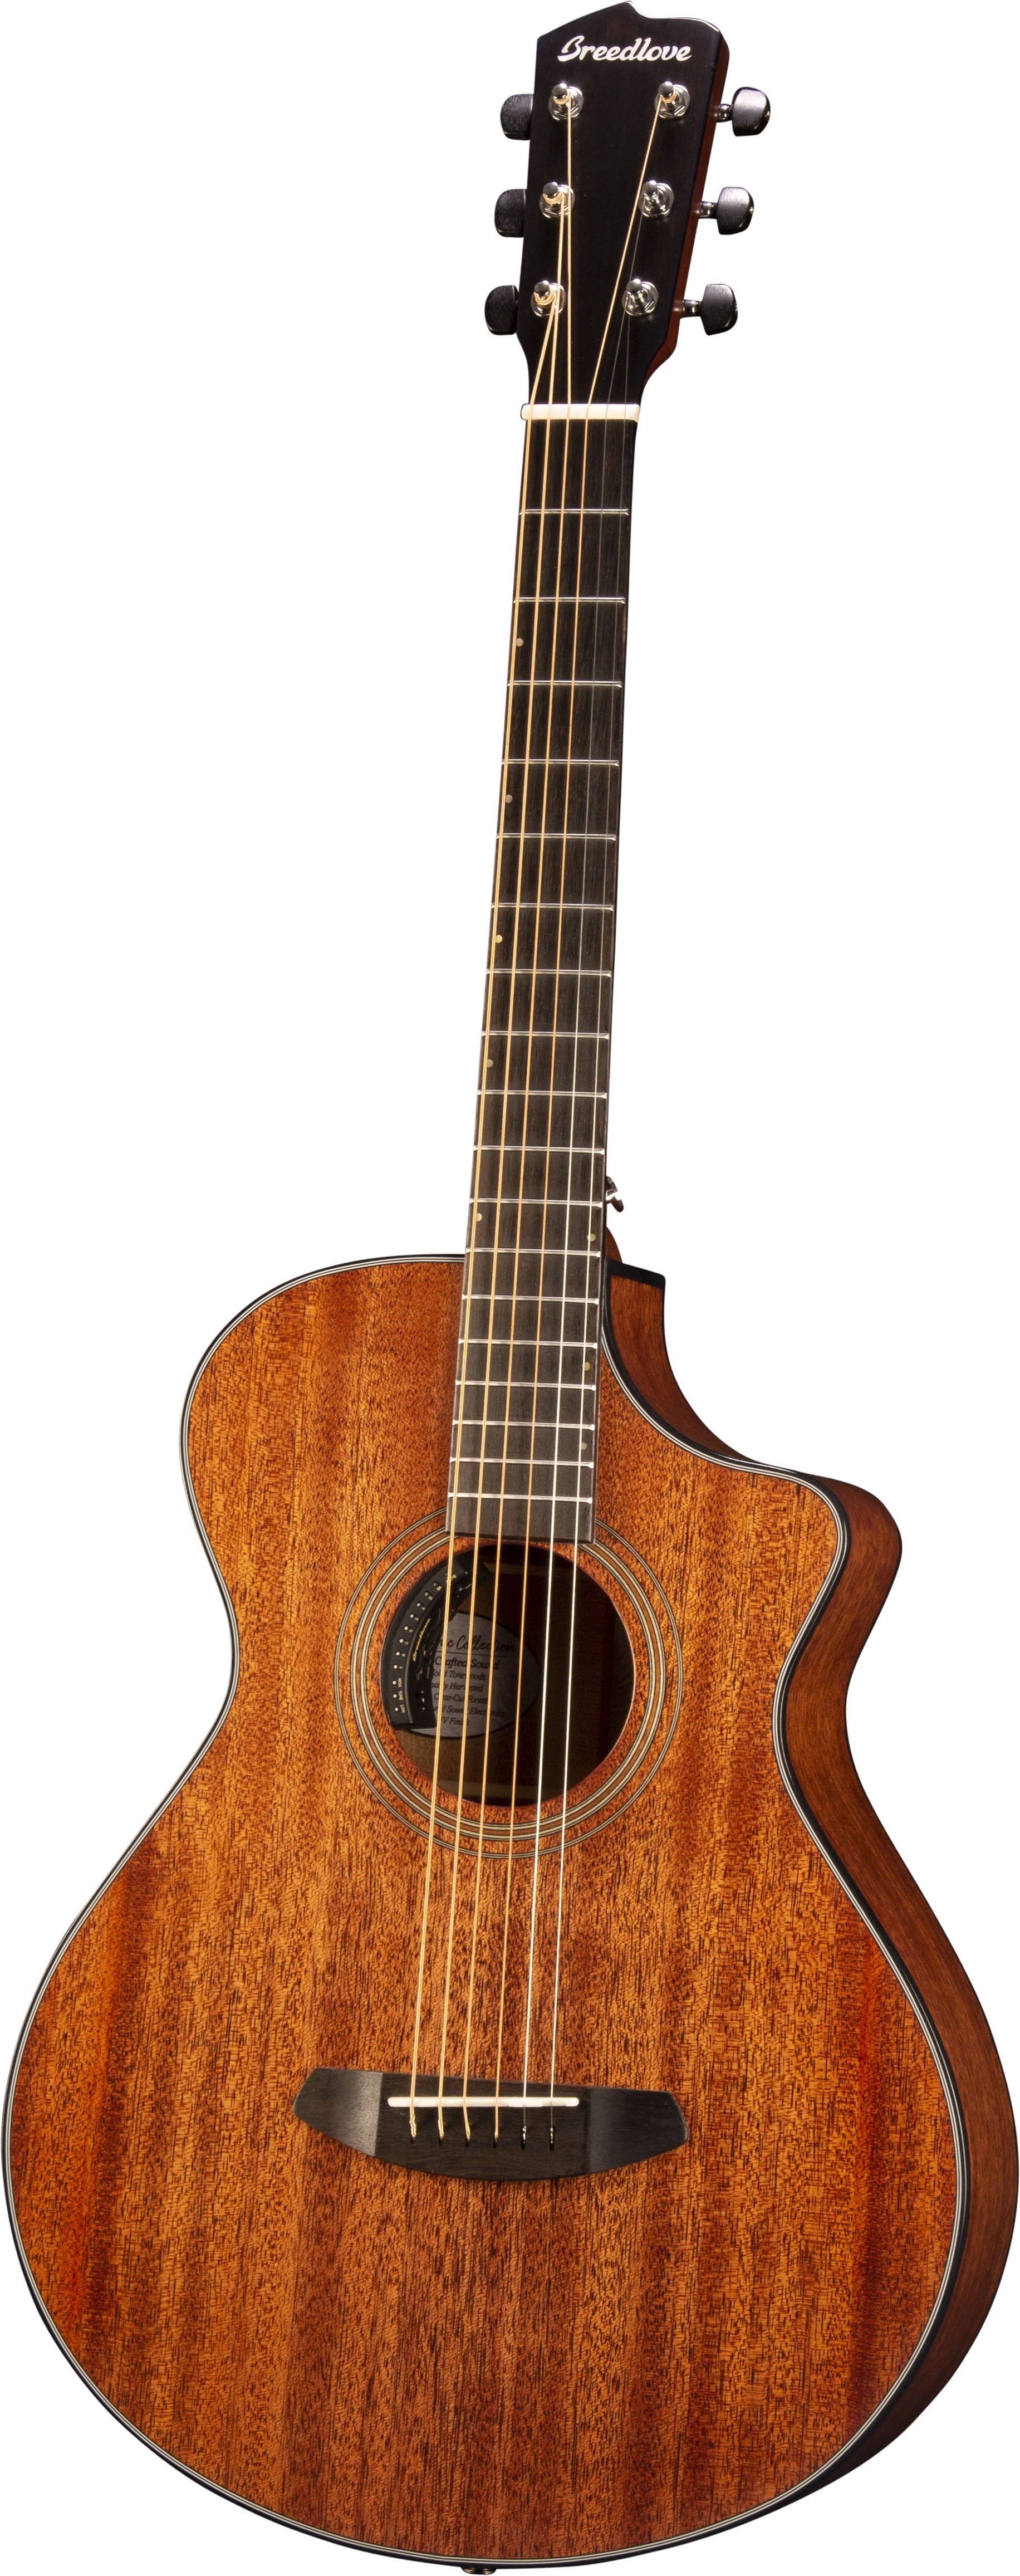 Breedlove Organic Series Wildwood Concertina Satin CE